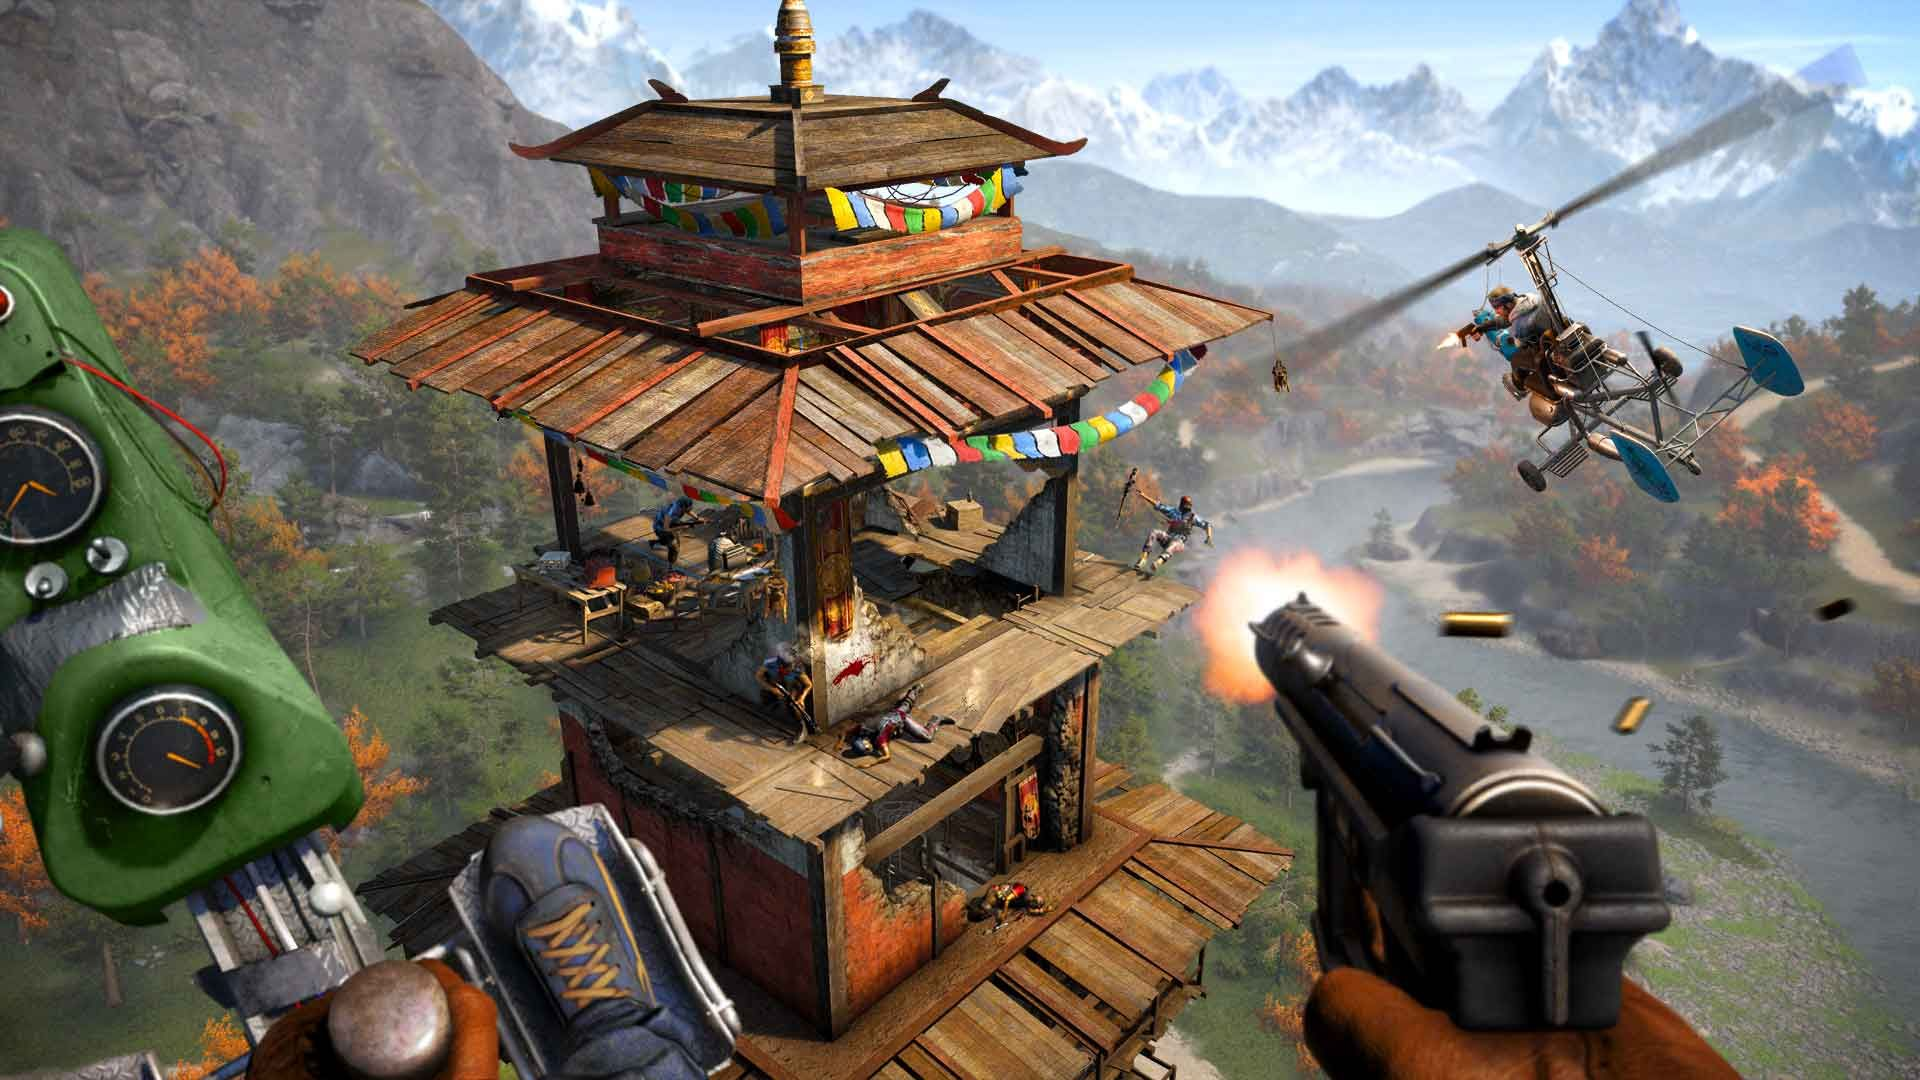 Most Viewed Far Cry 4 Wallpapers 4k Wallpapers